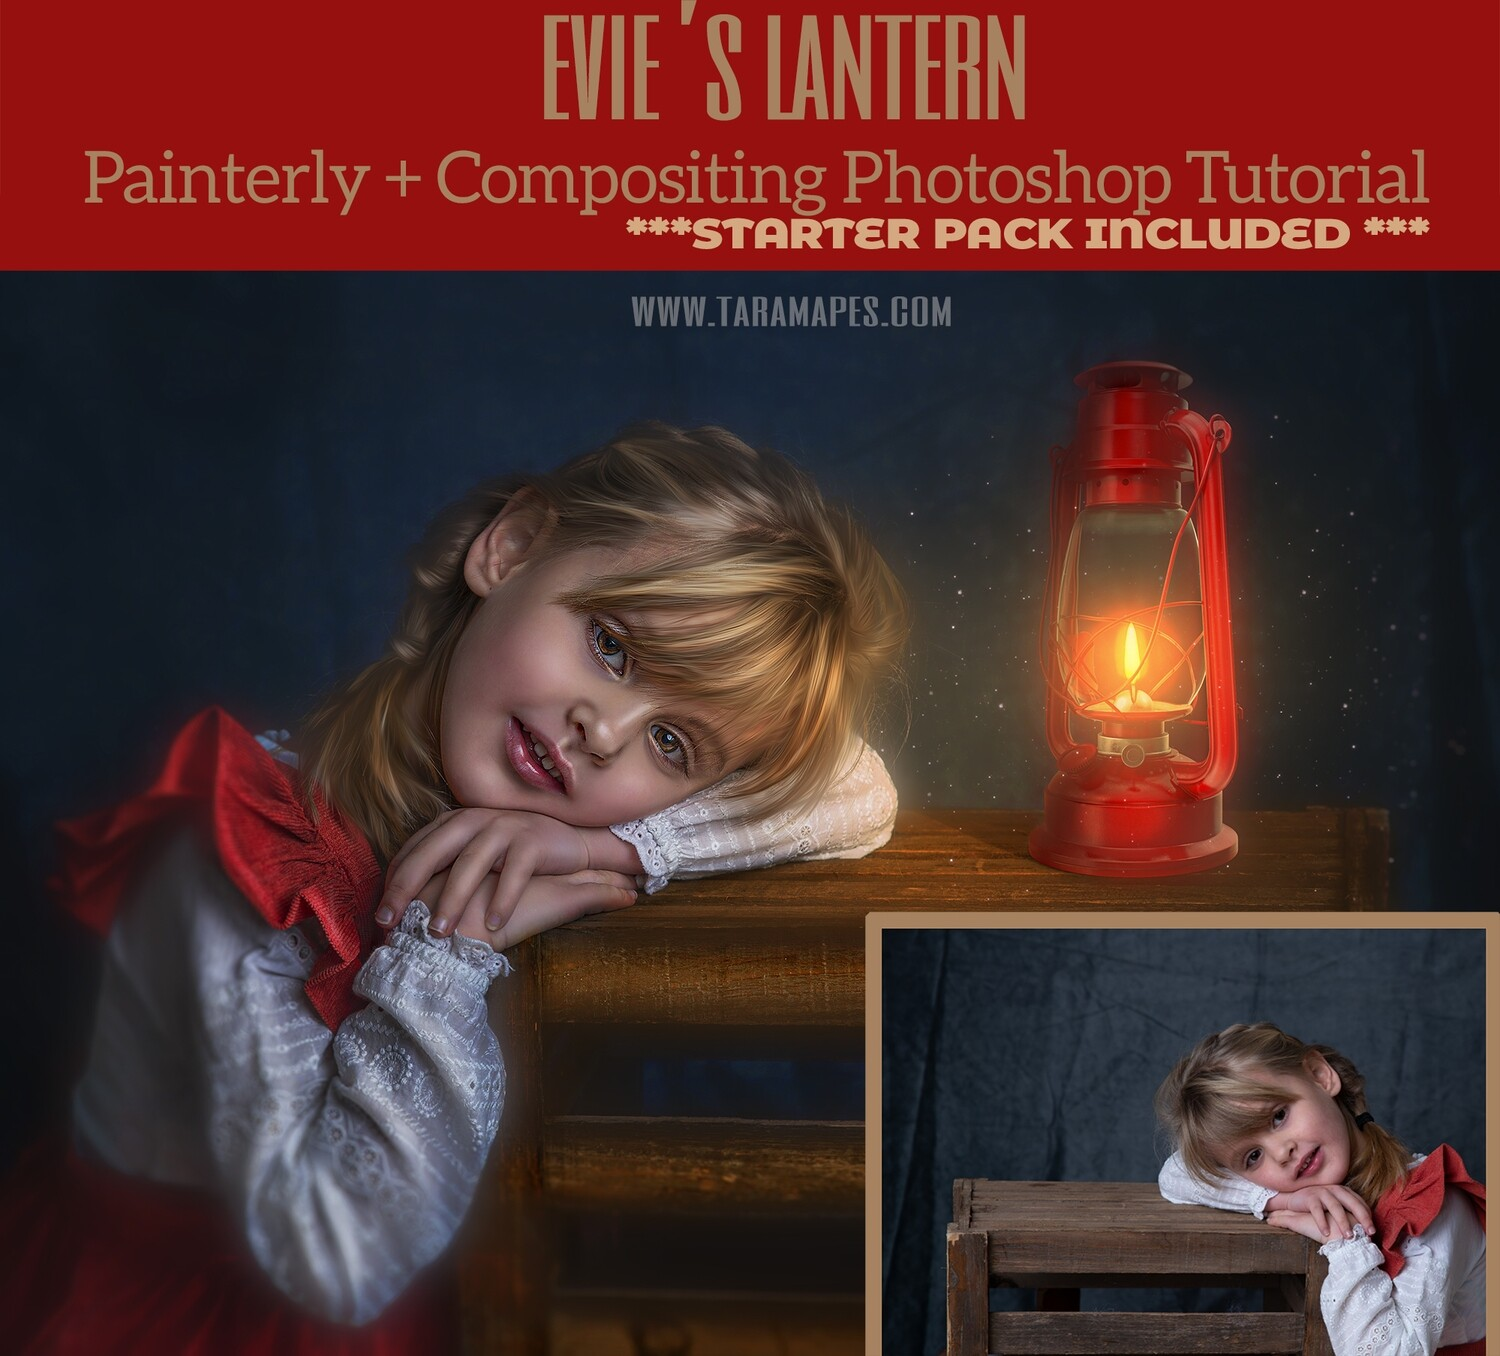 Evie's Lantern Painterly Editing + Compositing Photoshop Tutorial with STARTER PACK- Fine Art Tutorial by Tara Mapes